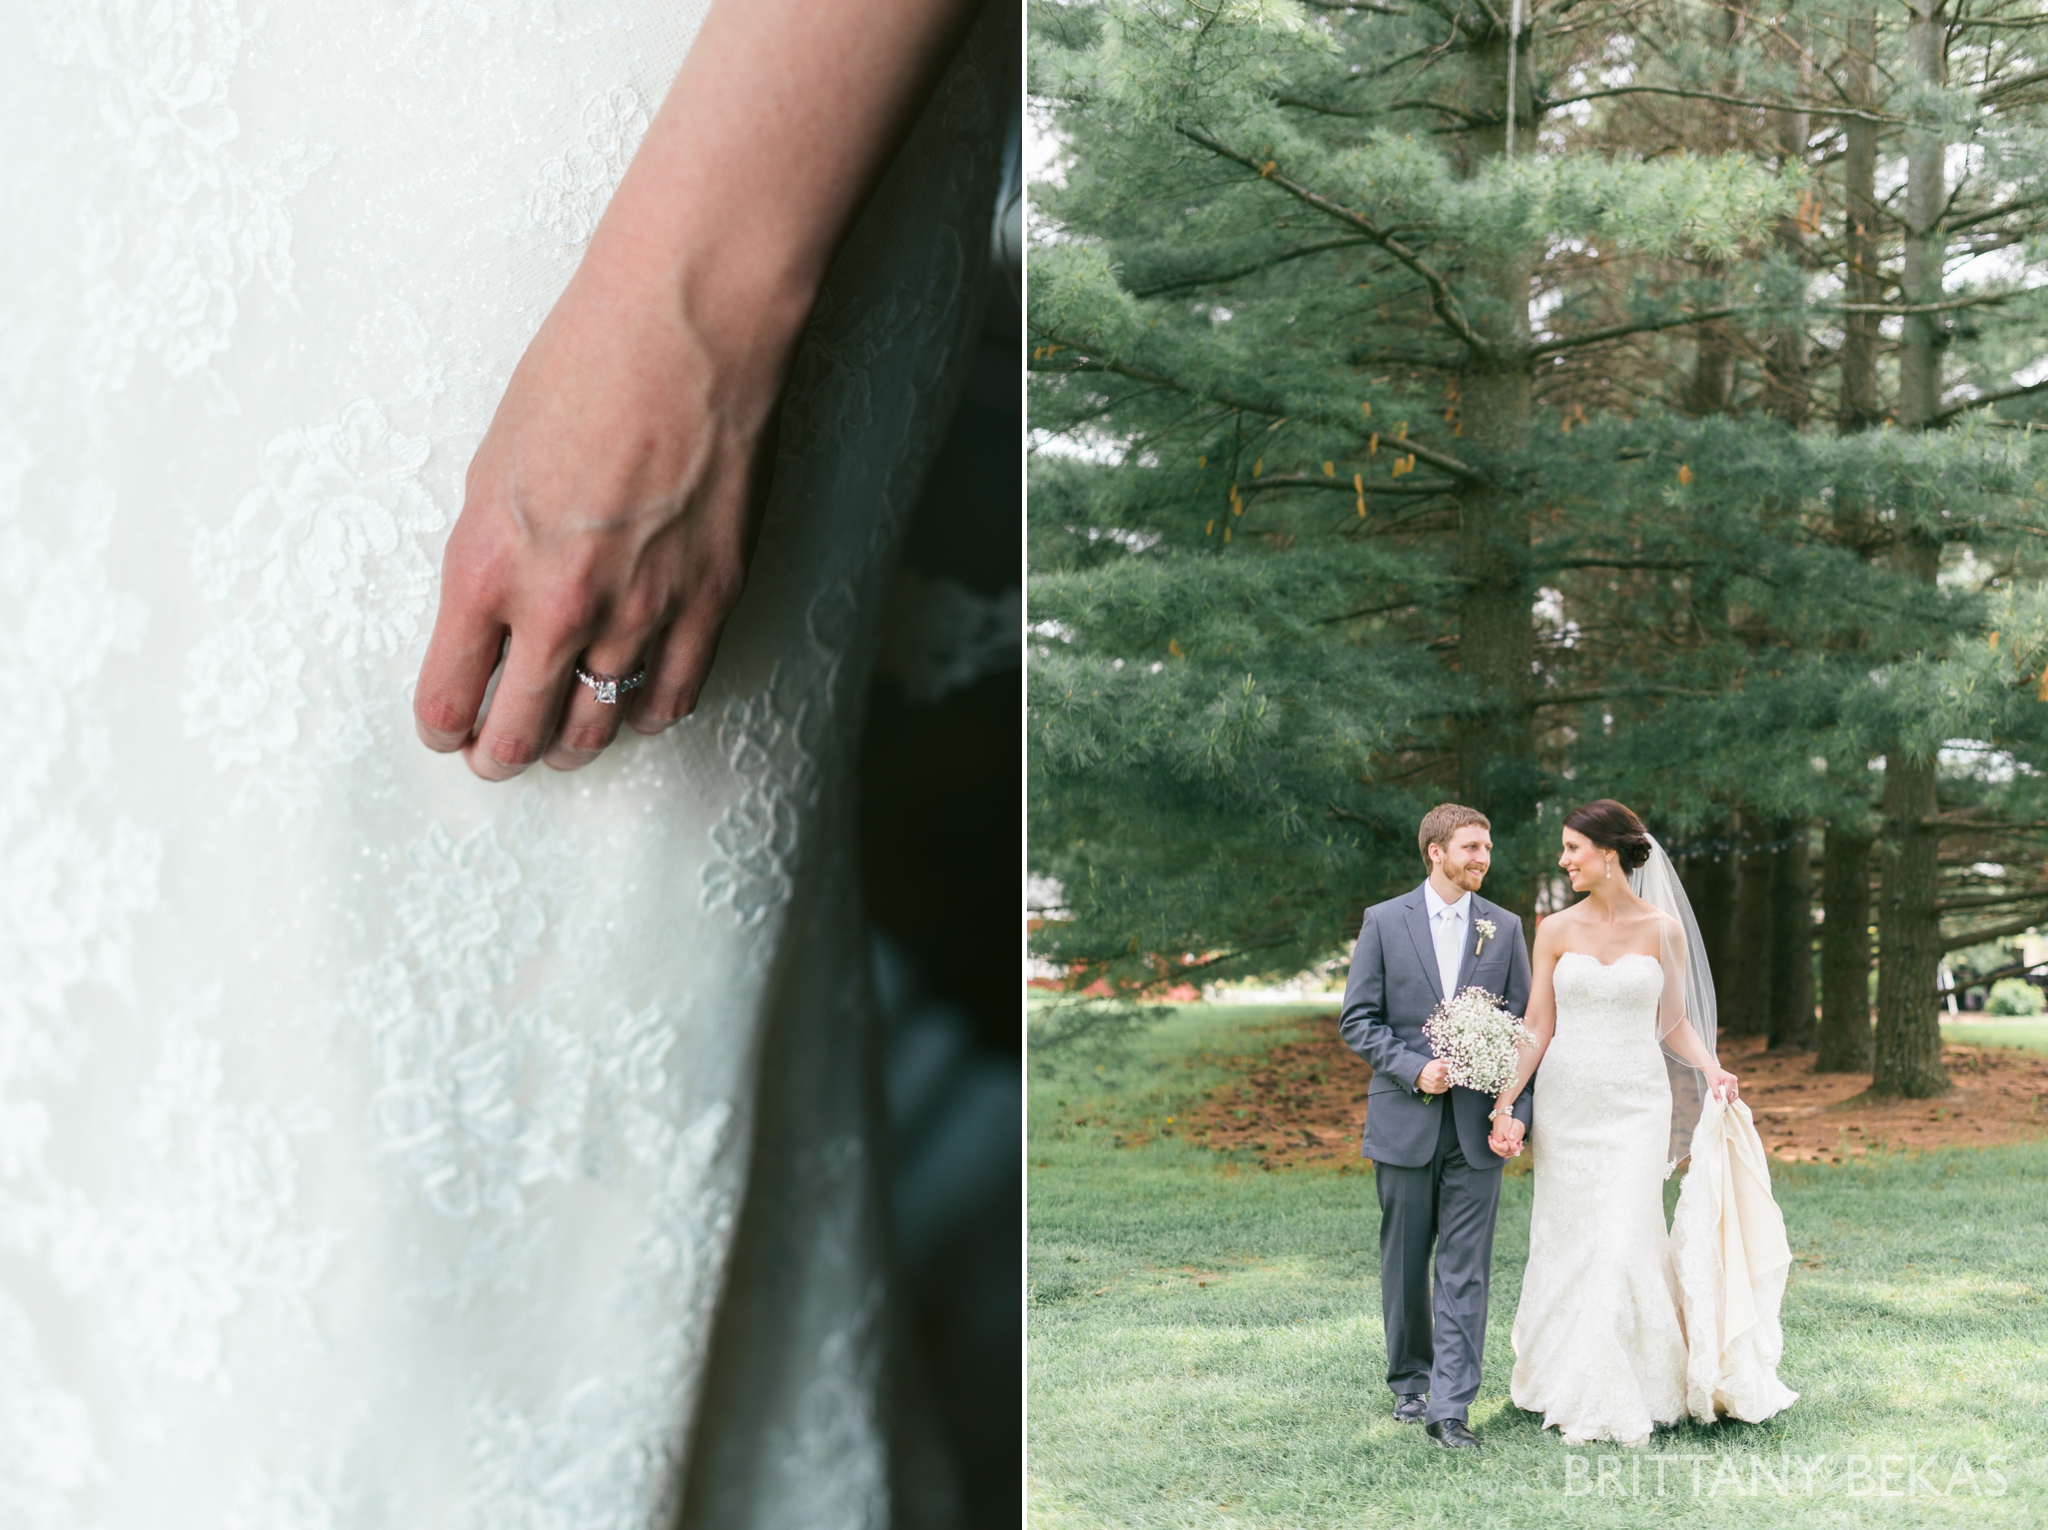 Galena Wedding - Oak Hill Wedding Photos - Brittany Bekas Photography_0060